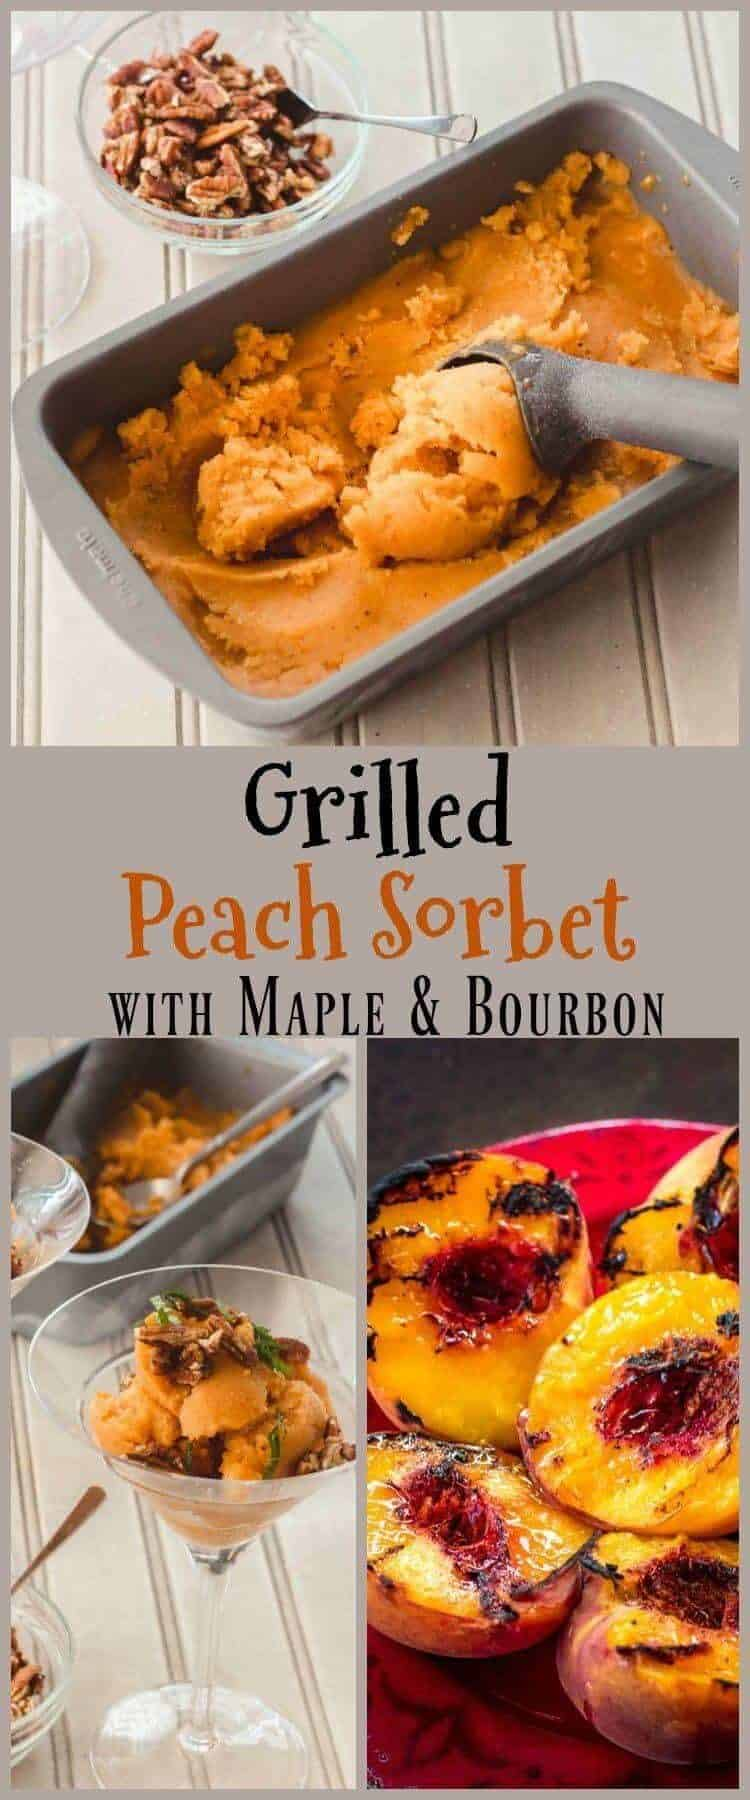 Grilled Peach Sorbet with Maple Syrup and Bourbon Pin - A just barely ripe, juice-dripping peach with the sear of a hot grill brings depth and complexity to this Grilled Peach Sorbet with Maple Syrup and Bourbon... Top it off with salted and candied pecans and a chiffonade of fresh mint. Asombroso! #peachsorbet #sorbetrecipes #boozydesserts #dairyfreedesserts#glutenfreedesserts